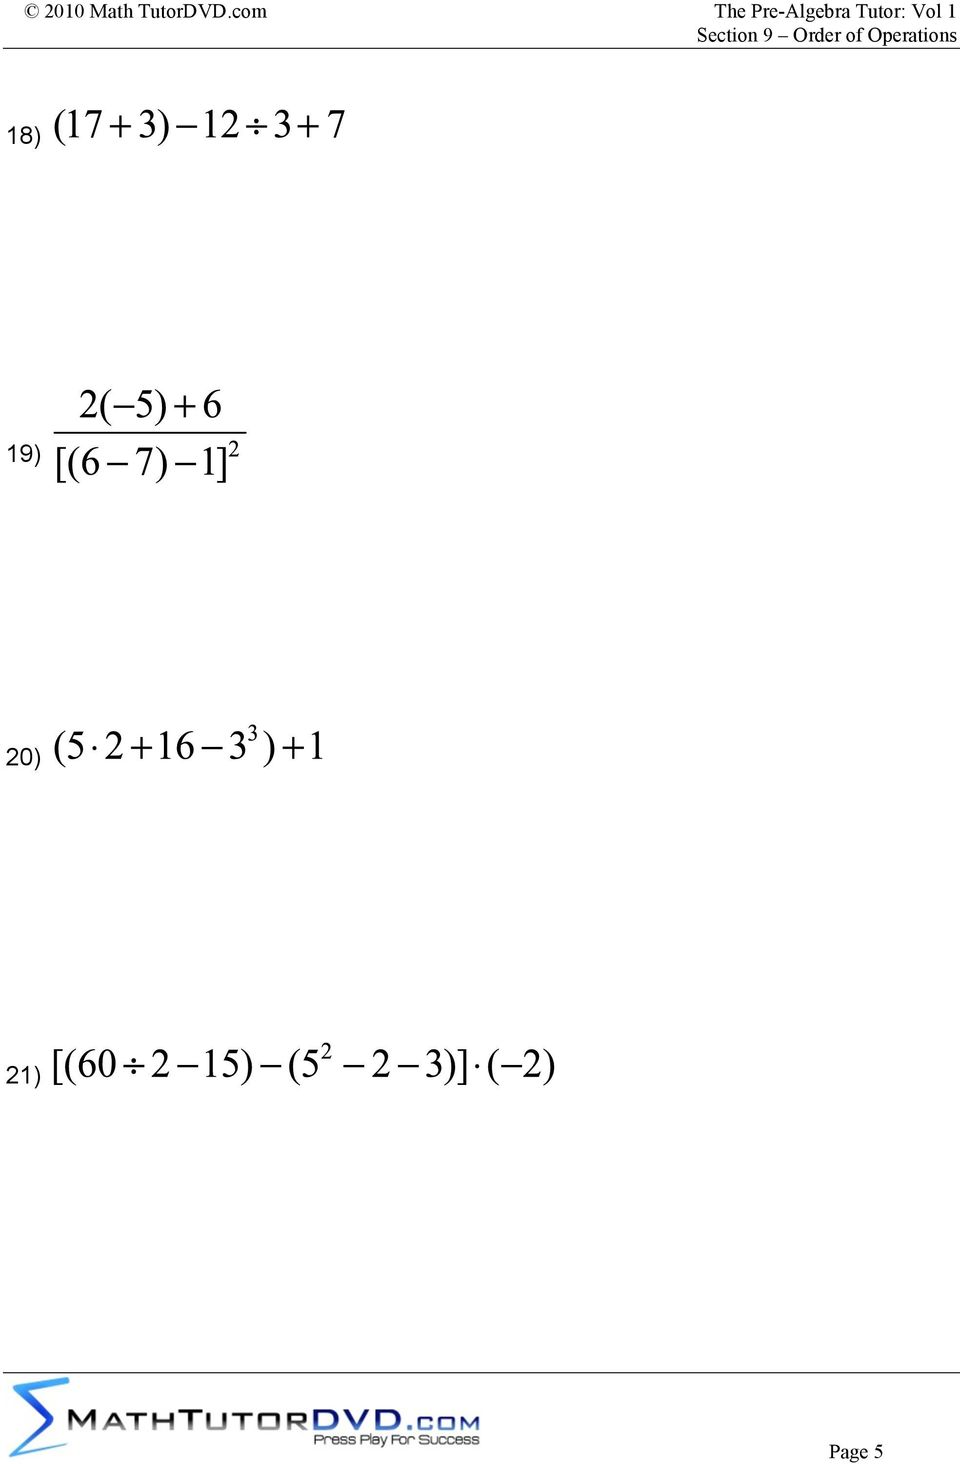 medium resolution of Supplemental Worksheet Problems To Accompany: The Pre-Algebra Tutor: Volume  1 Section 9 Order of Operations - PDF Free Download